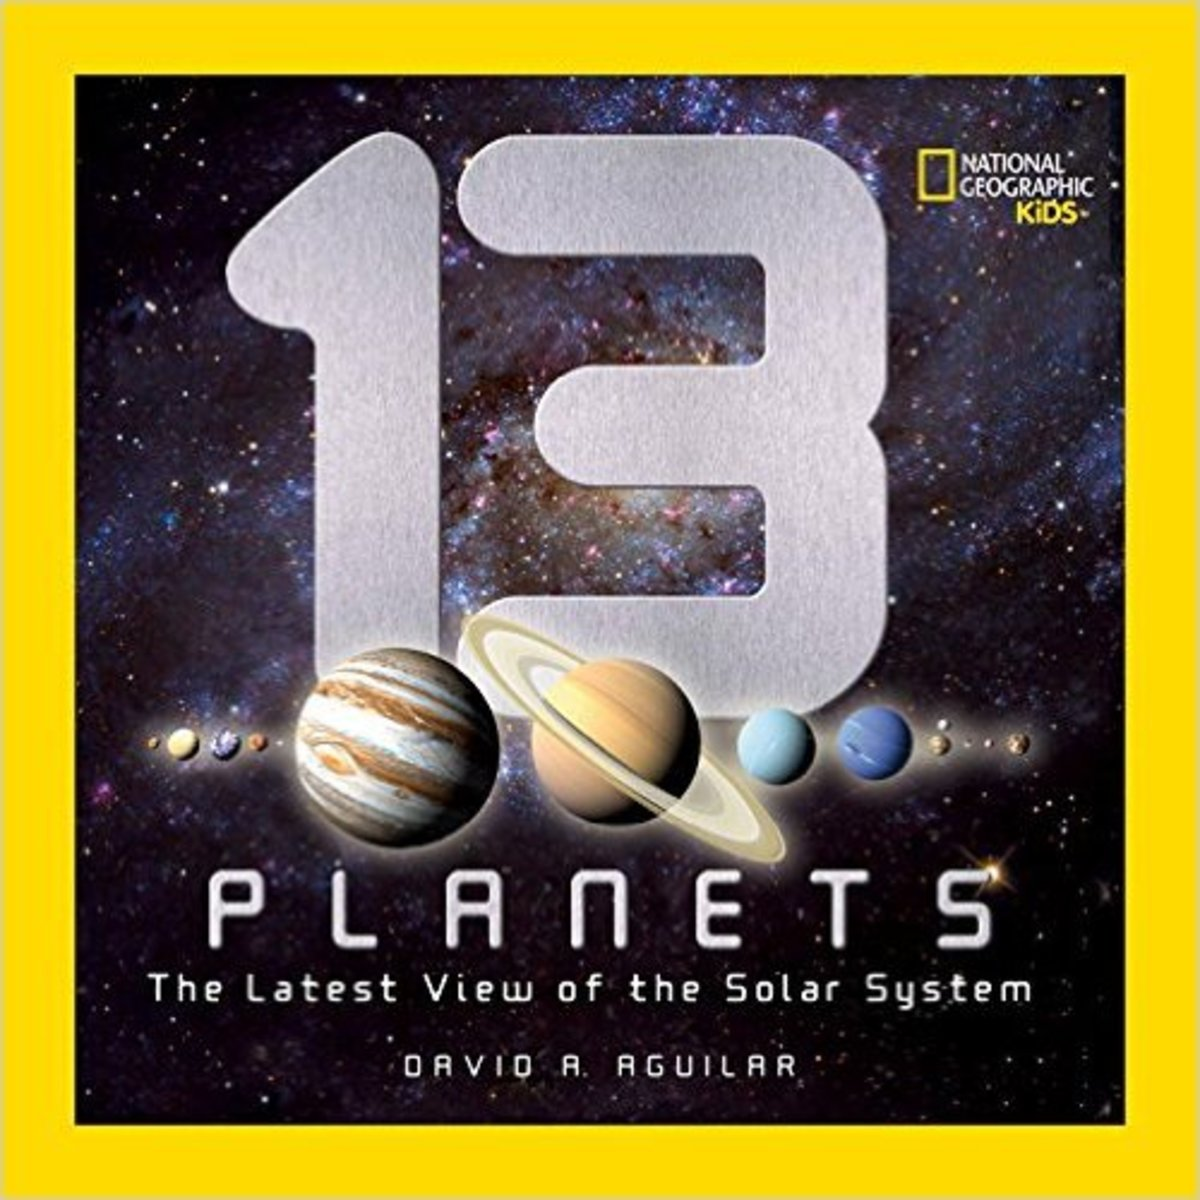 13 Planets: The Latest View of the Solar System (National Geographic Kids) by David A. Aguilar